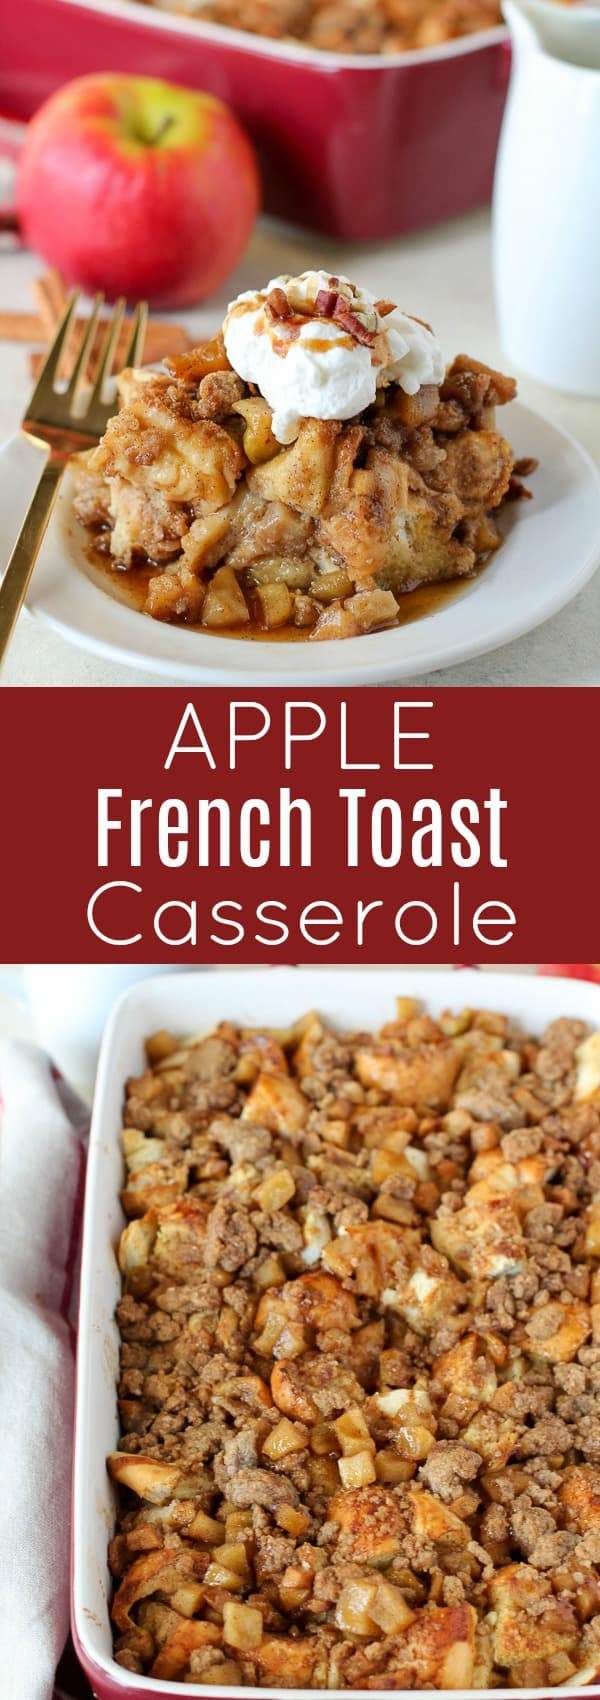 Baked Apple French Toast Casserole - Fluffy baked french toast filled with sweet cinnamon apples, brown sugar and vanilla. #fall #applerecipes #frenchtoast #frenchtoastcasserole #bakedfrenchtoast